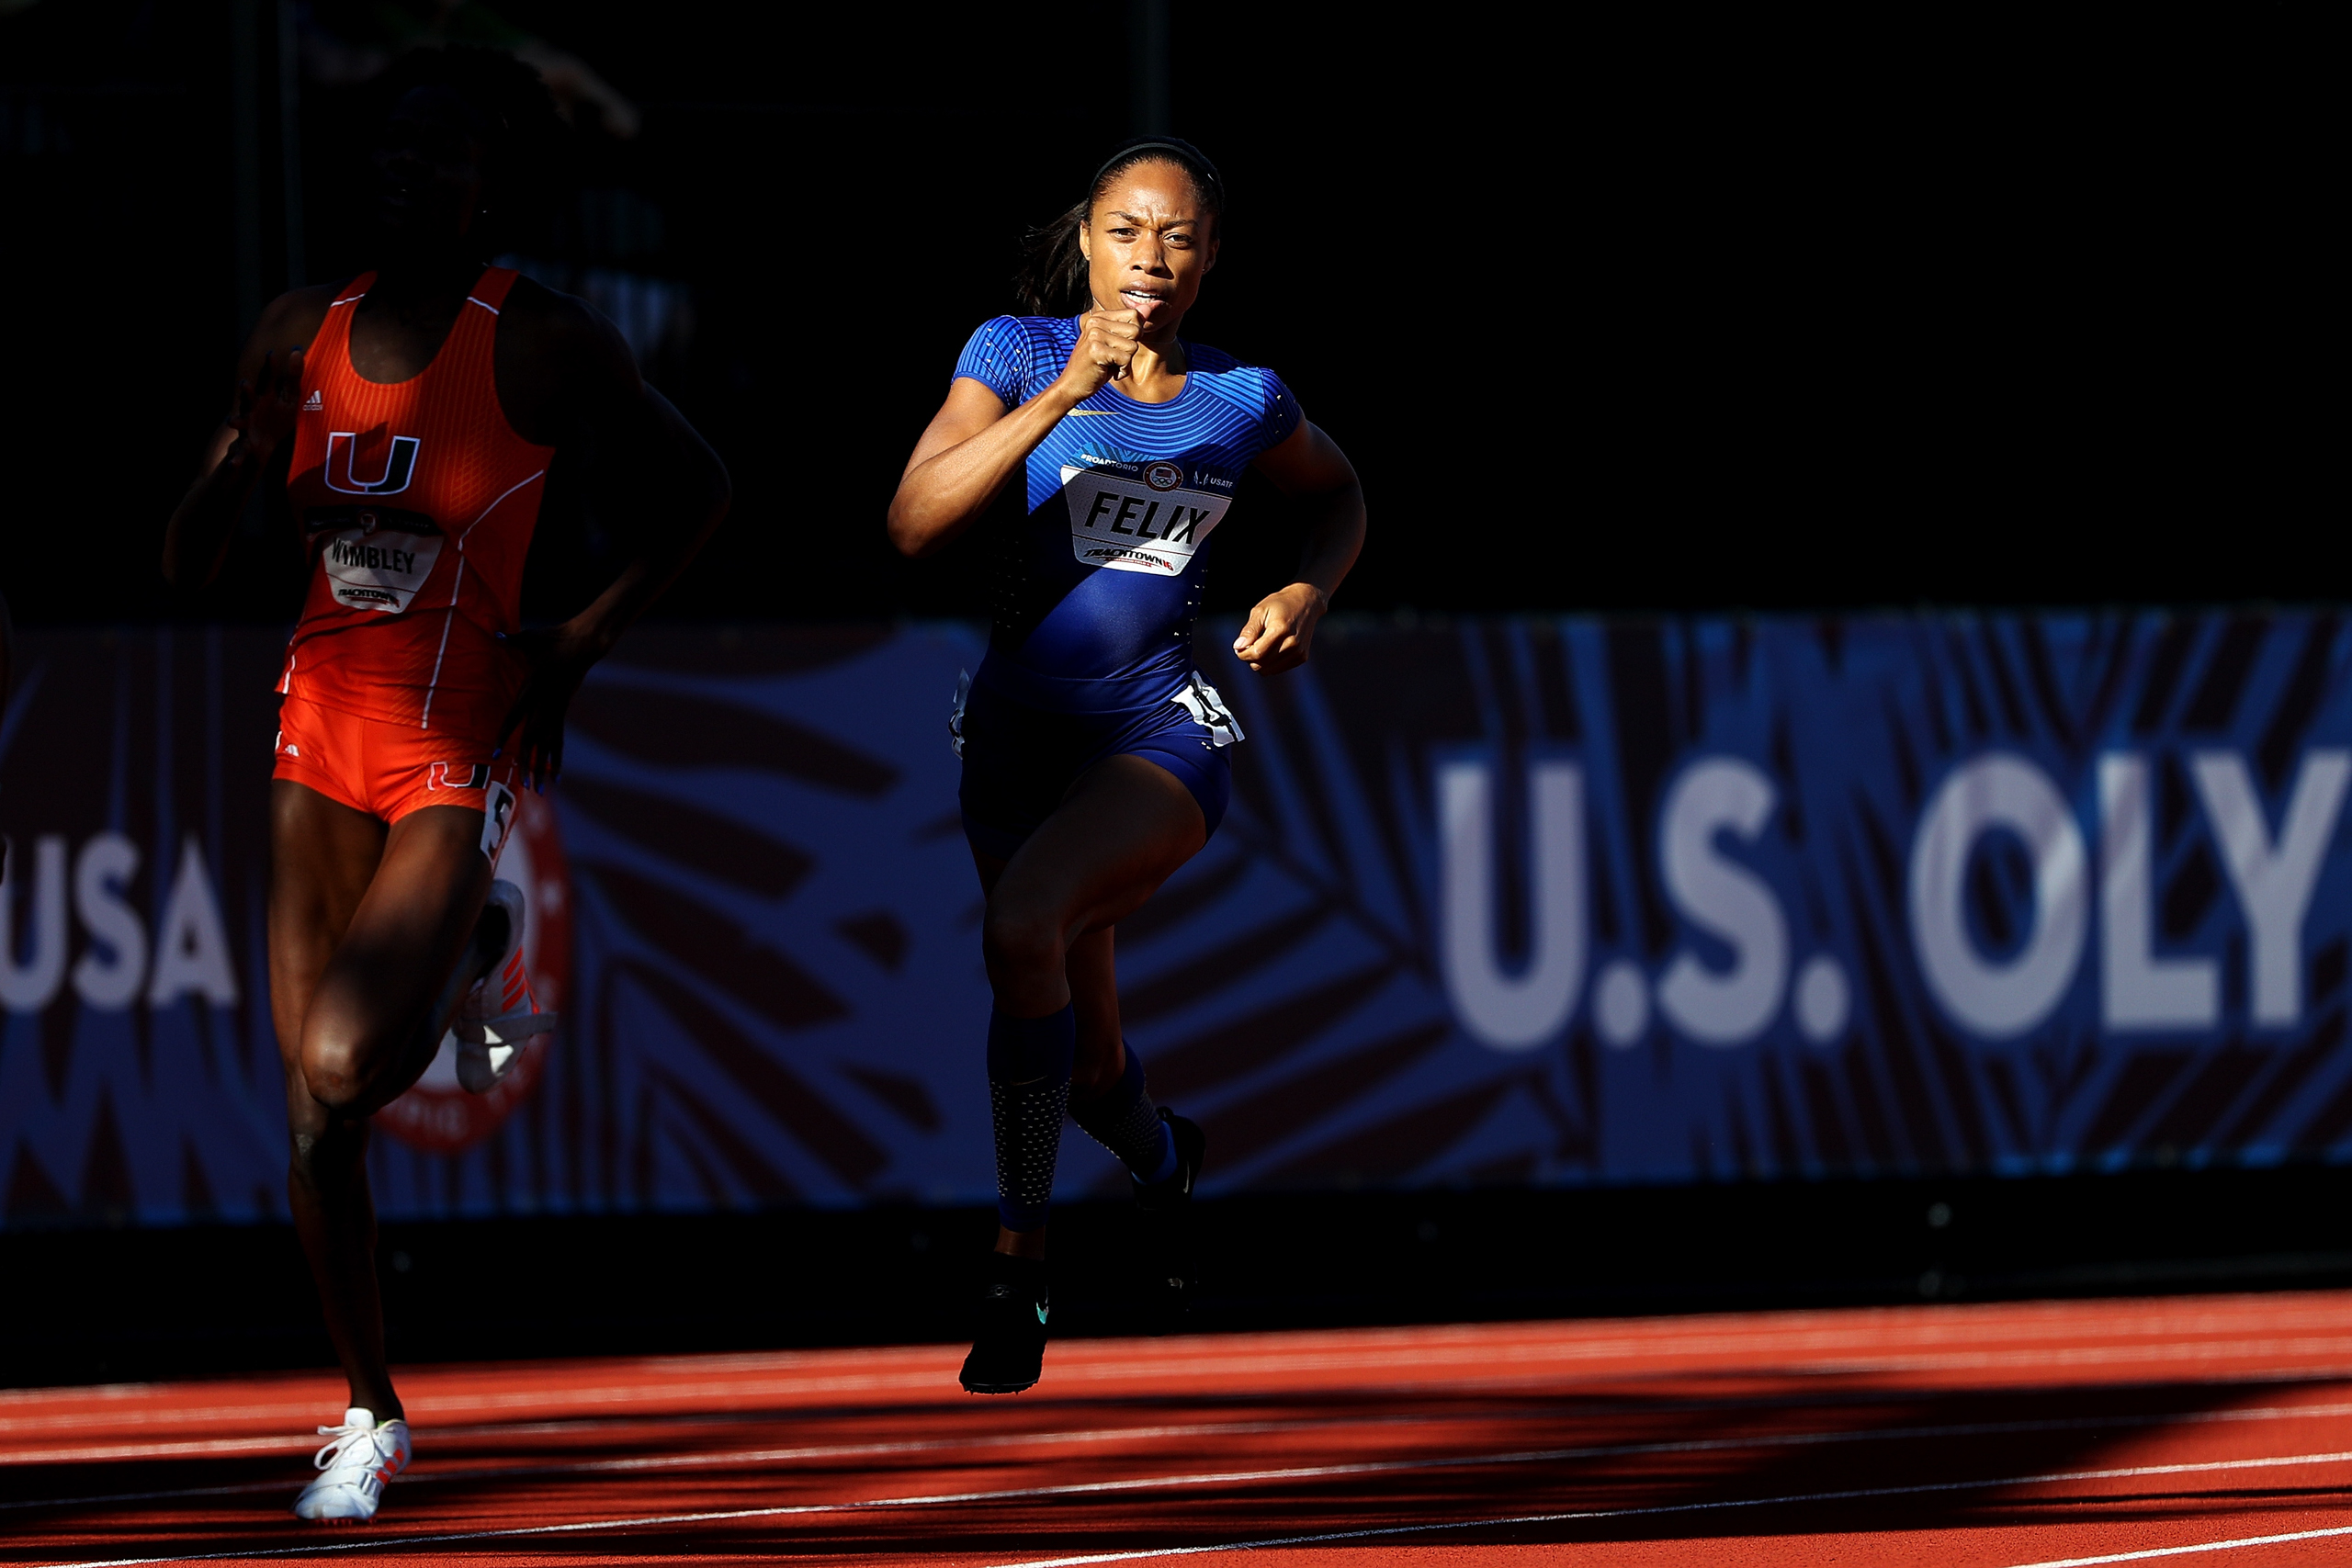 """<strong>Allyson Felix, Track and Field, USA</strong>In 2004, when Felix was 18 and prepping for her first Olympics, she trained with a teammate who was pushing 30. She swore that would never be her. """"And here I am in the same position, probably looking so old to those kids who are training with us,"""" says Felix. """"But I completely get it now. If you love it, why not?""""                                   Felix announced herself as one of the world's great sprinting talents with a silver medal in the 200 m at those 2004 Games, then paid off that promise with another silver and four golds in 2008 and 2012—tying Jackie Joyner-Kersee for the U.S. women's track medals record.                                   Felix won't get the chance to win gold in both the 200 m and 400 m in Rio; she missed a 200 spot by 0.01 sec. at the U.S. trials. But a win in either the 400 m or a relay would give Felix the record and cement her place in track history. —S.G."""